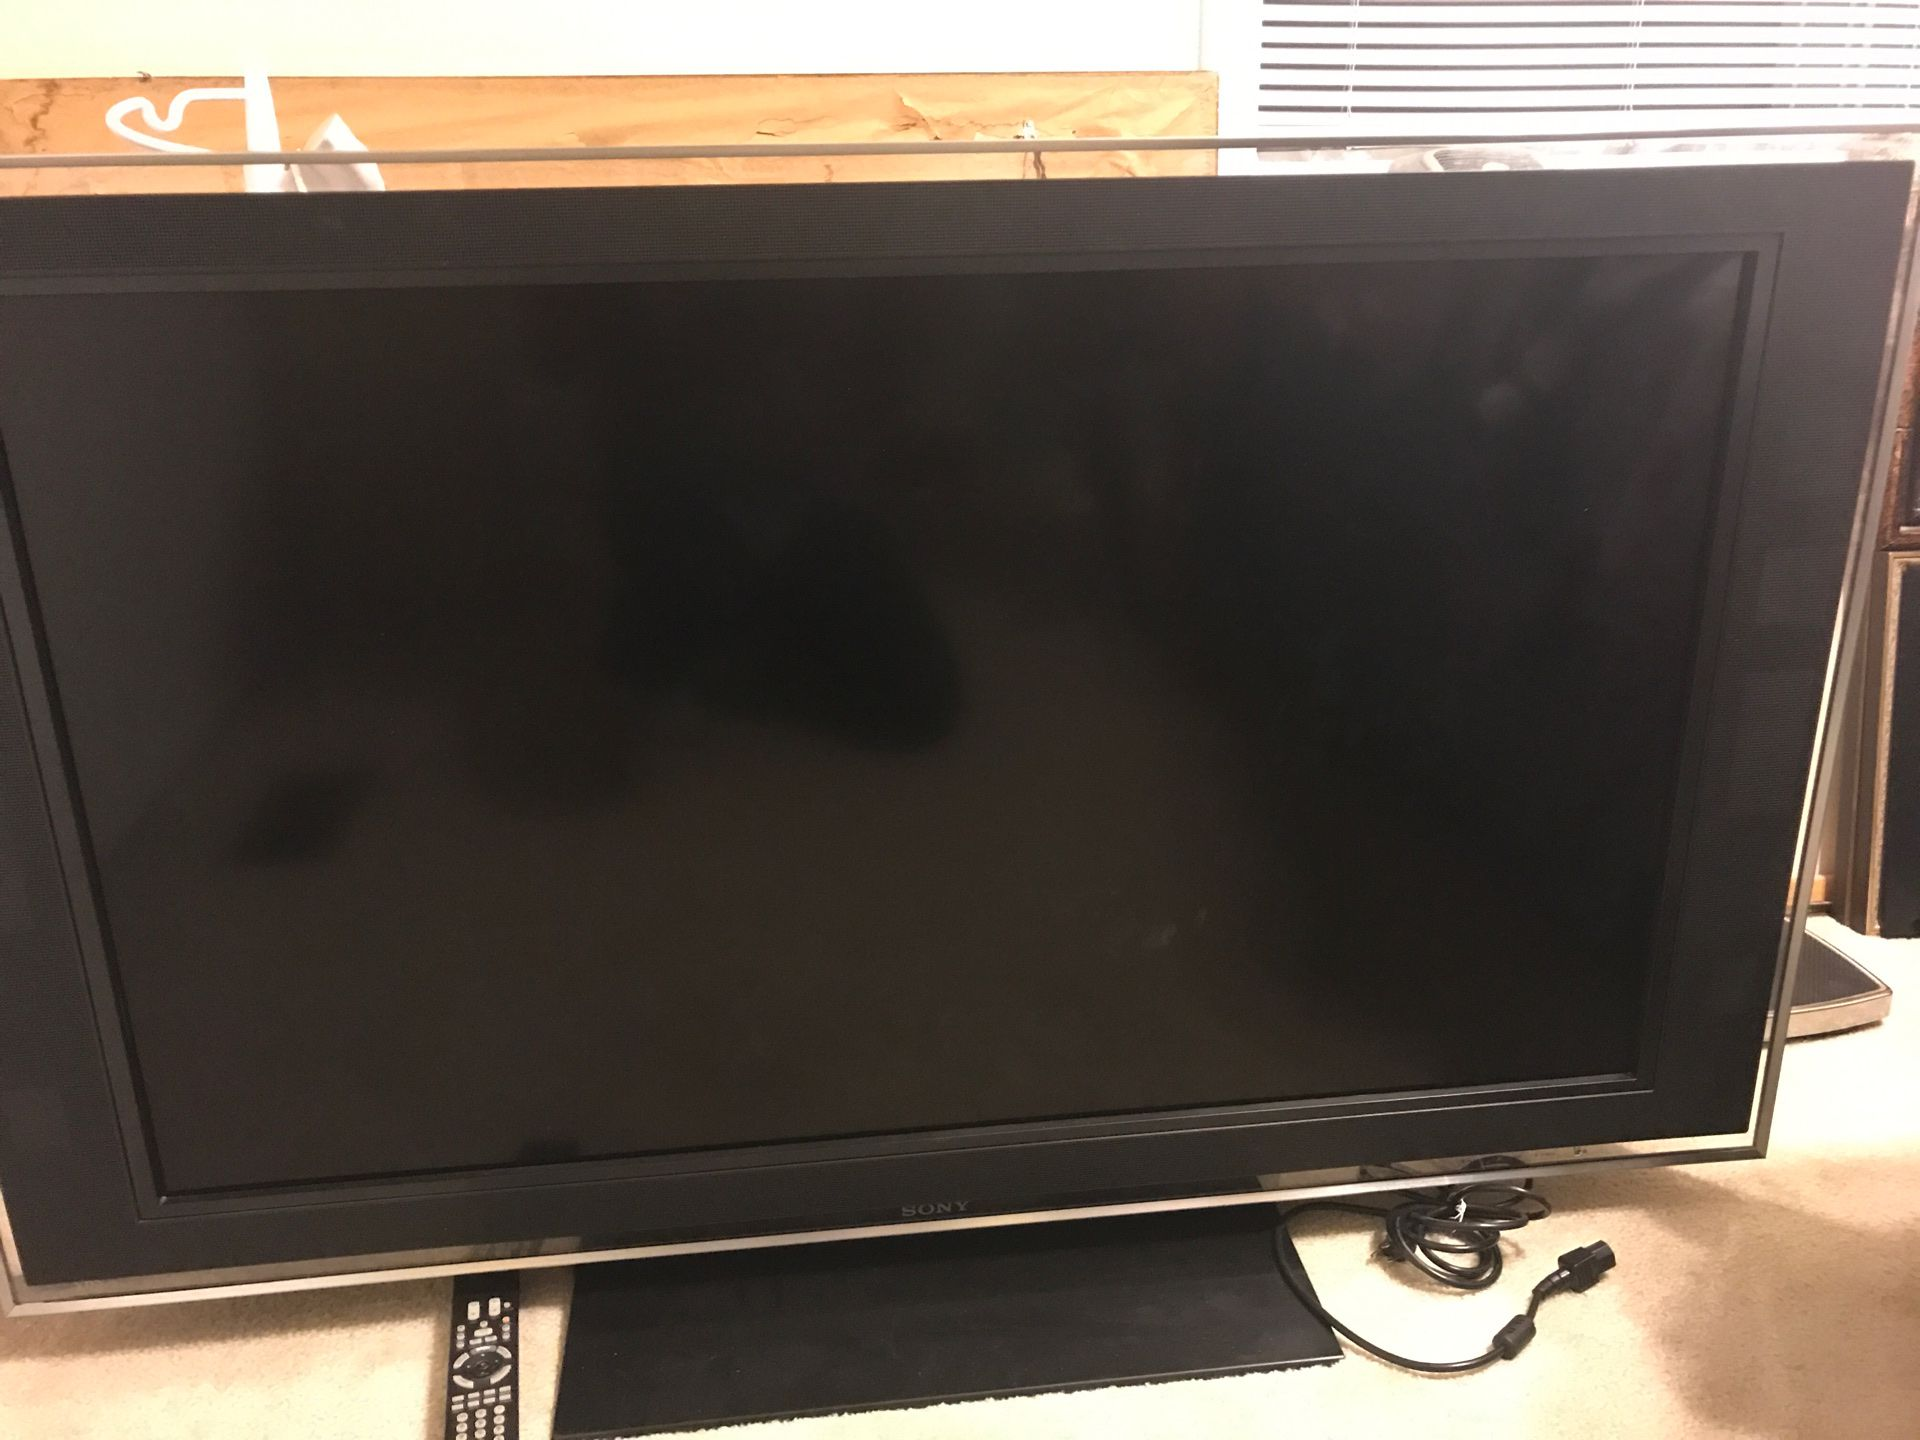 52inches Flat screen Sony brand